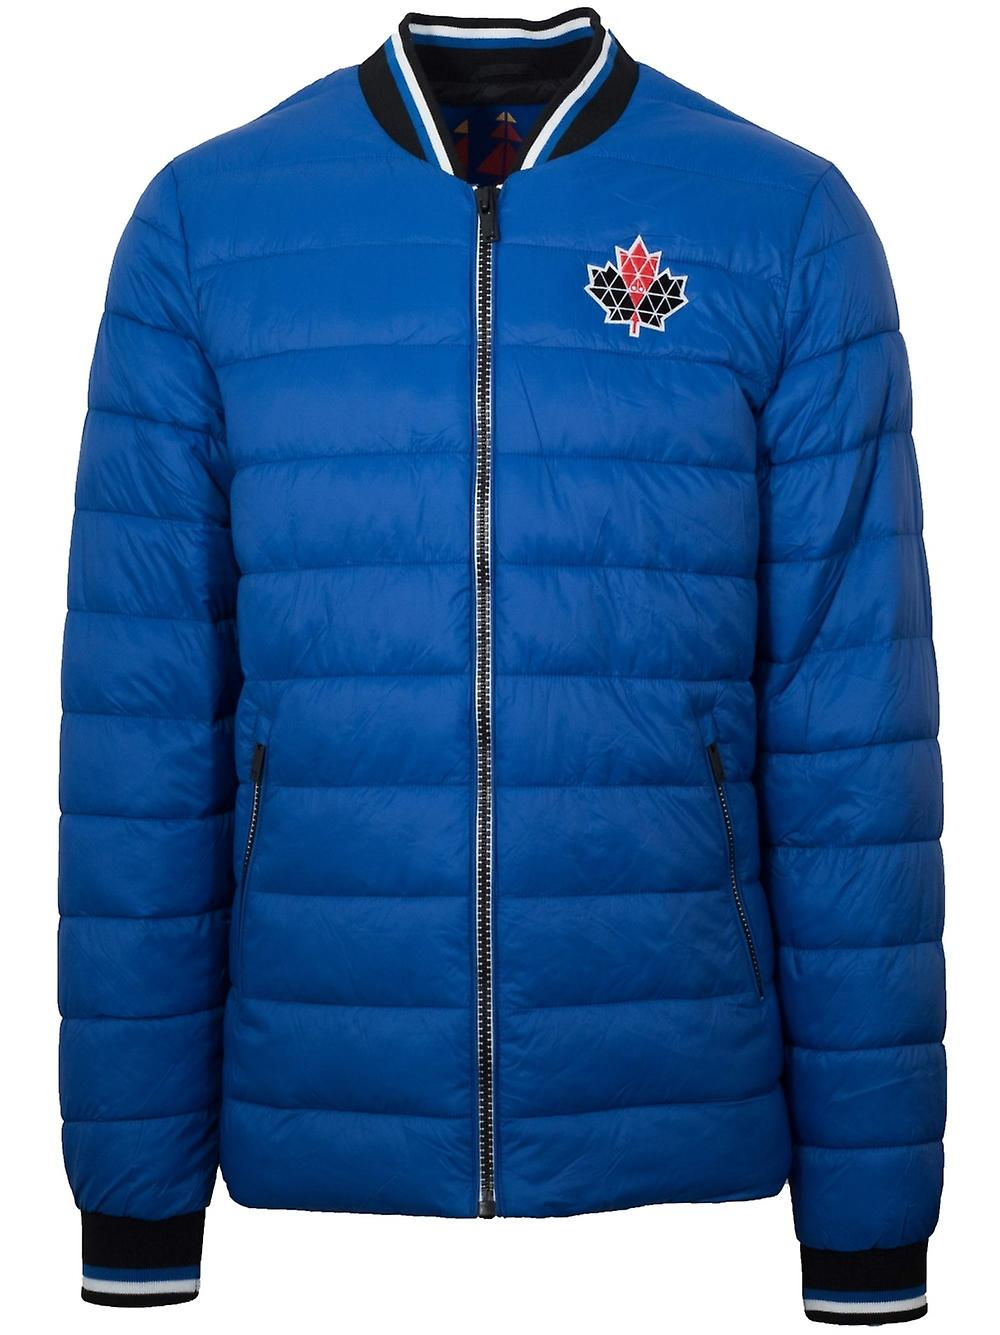 Moose Knuckles Moose Knuckles Team bleu Beaugrand Bomber Jacket